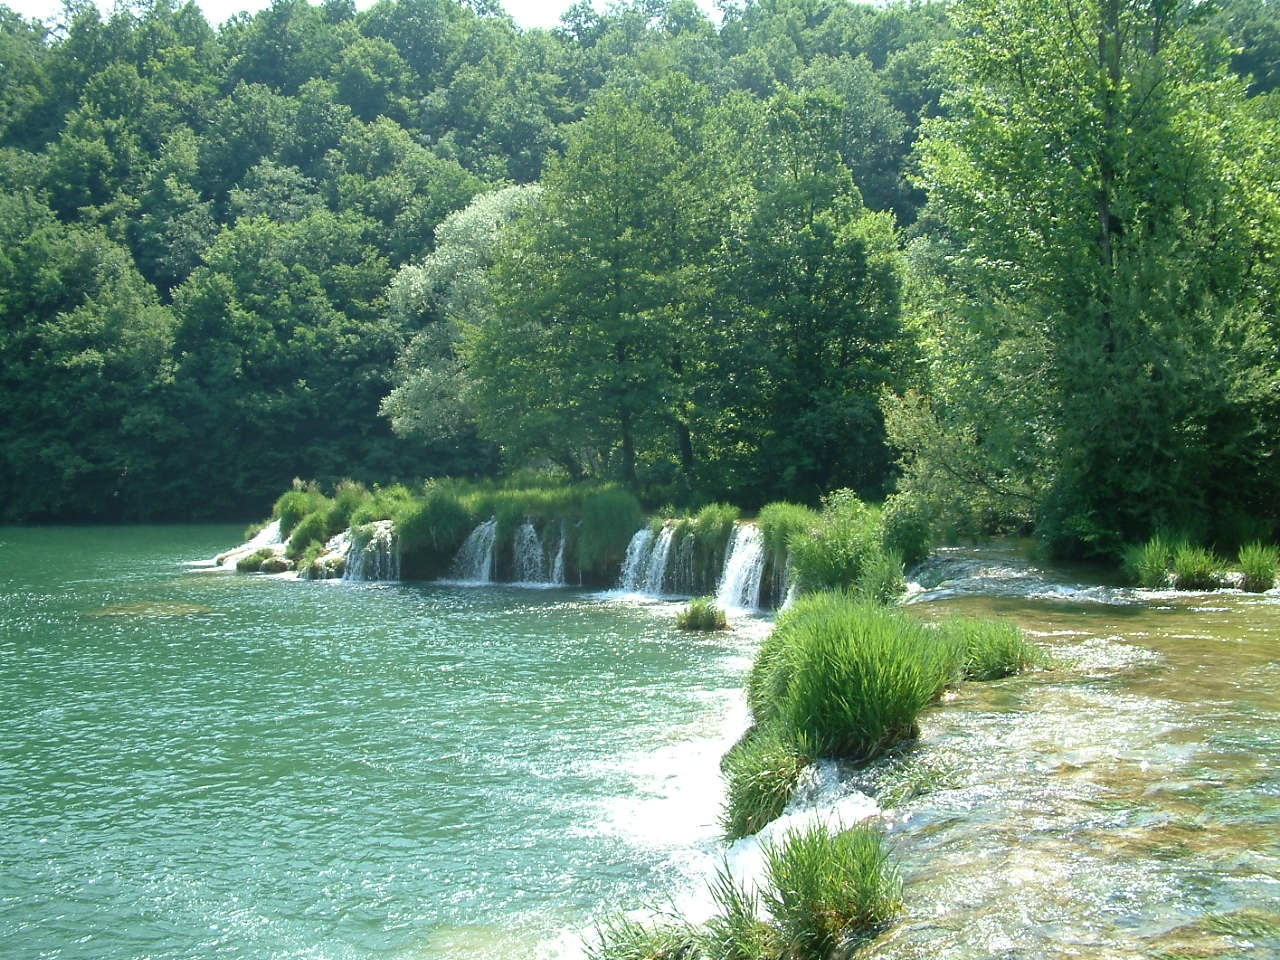 Zvecaj village, Mreznica river, Zvecaj,  waterfalls, swimming, Croatia